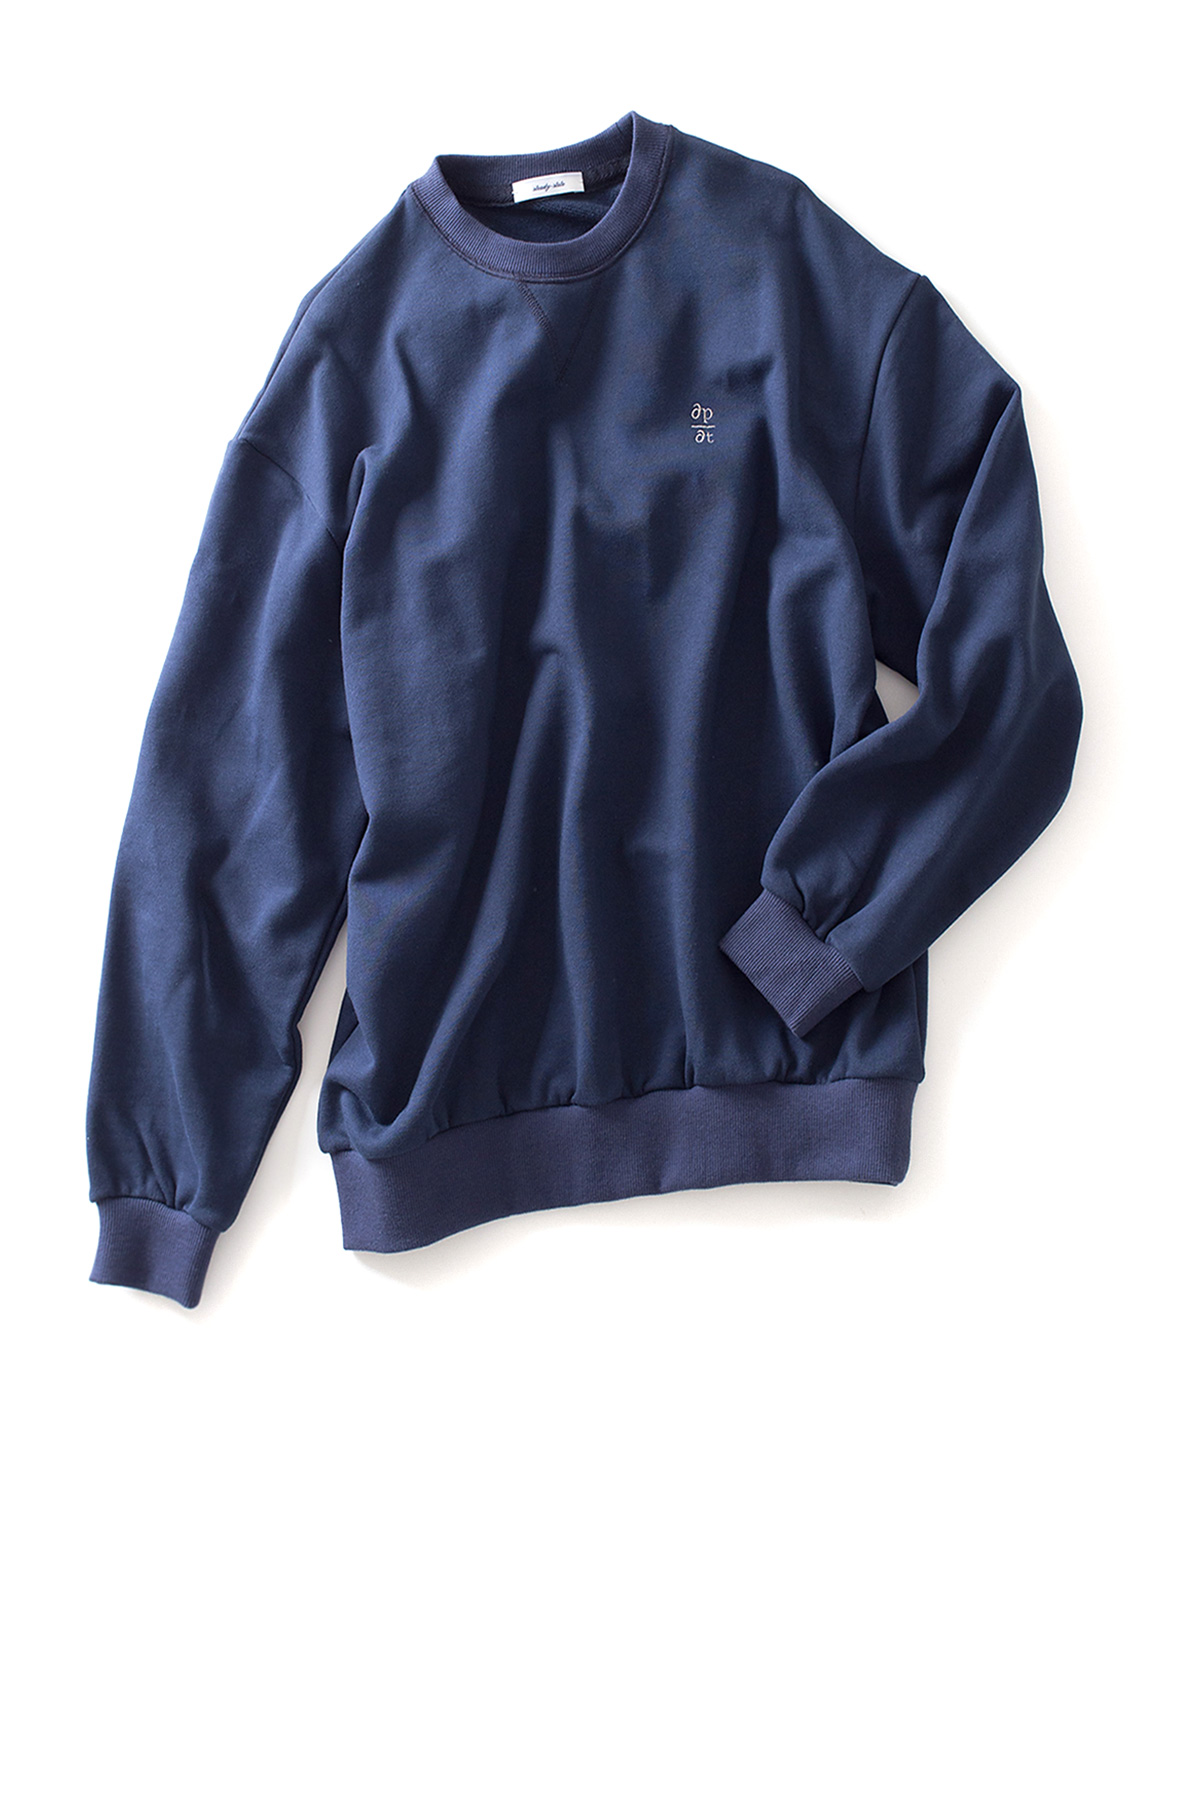 steady state : Sweatshirt (Navy)